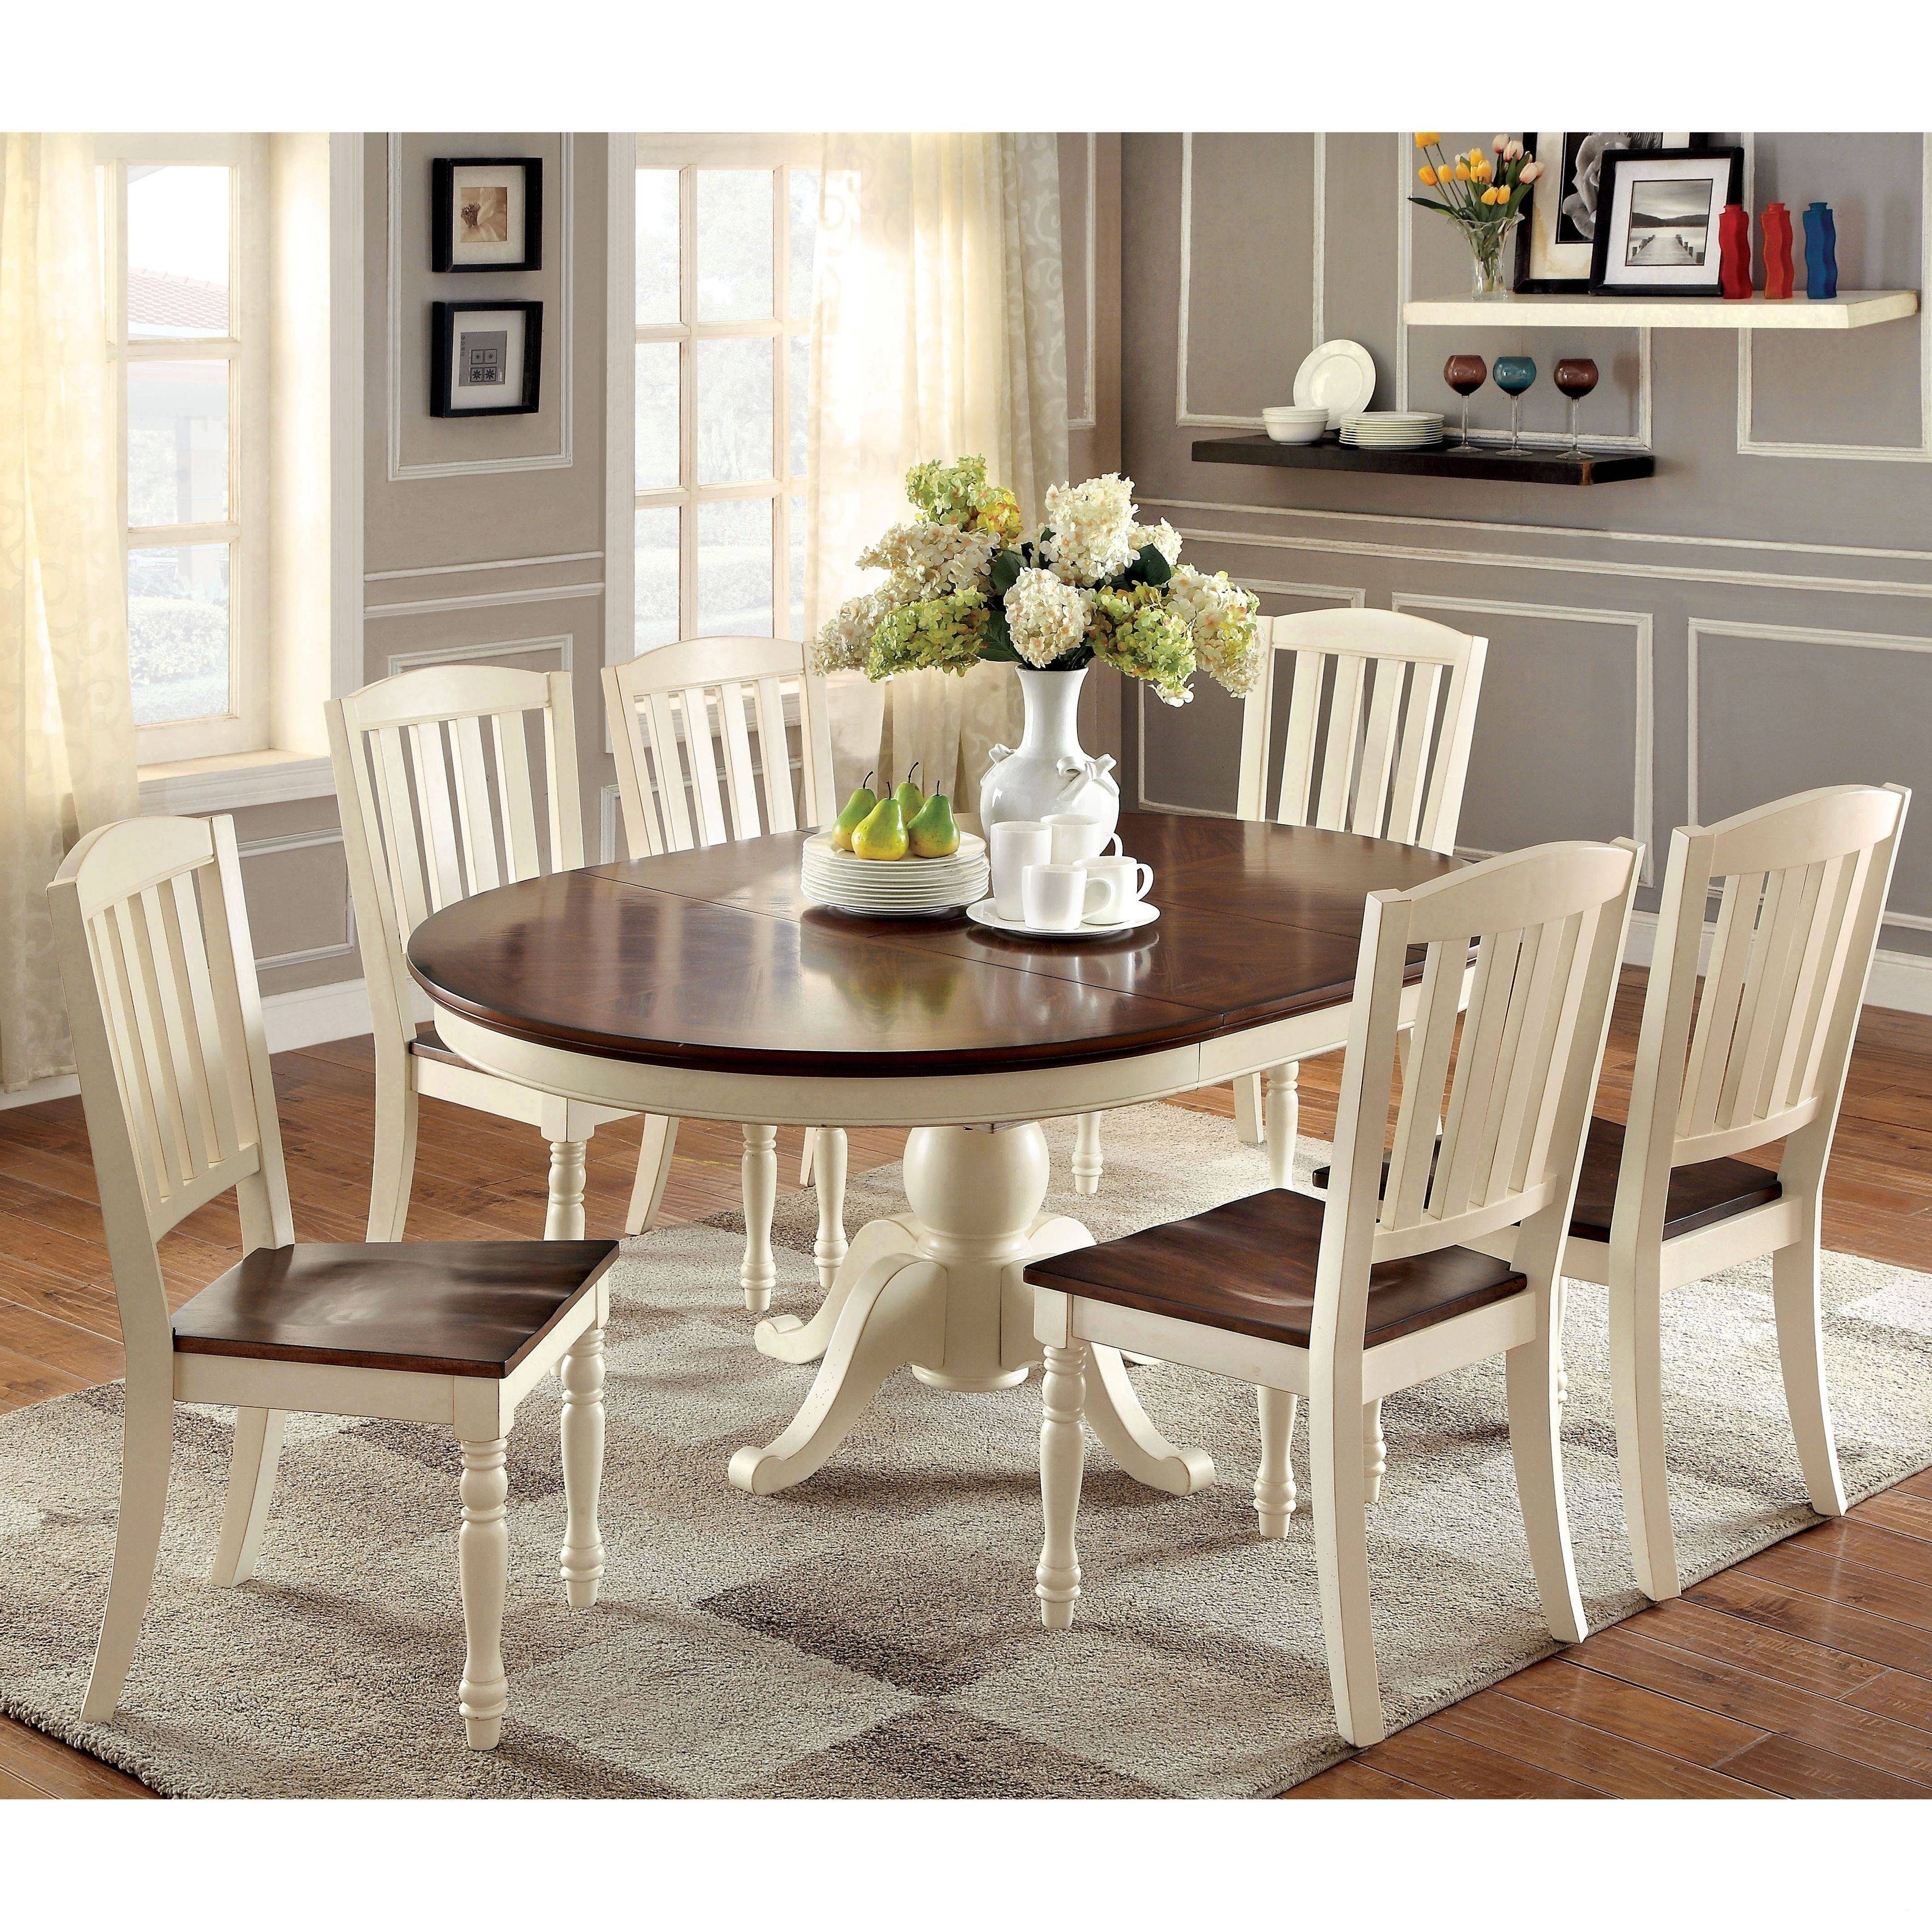 Favorite Pedestal Extending Dining Table Luxury Round Extension Dining Table For Extendable Round Dining Tables Sets (View 14 of 25)